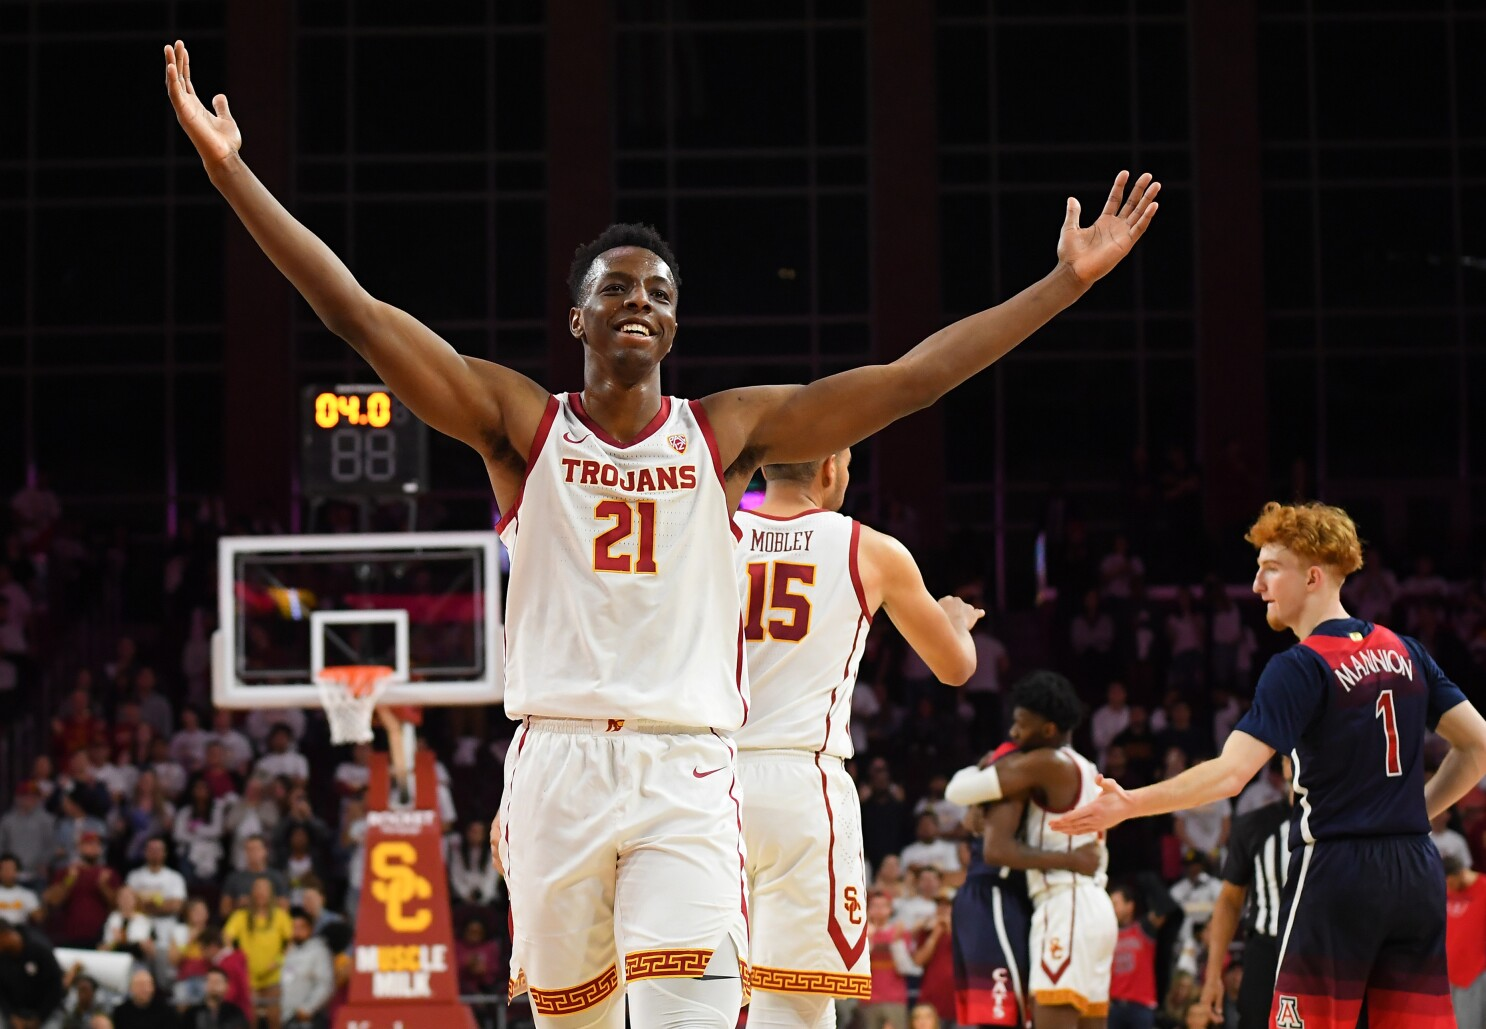 USC standout Onyeka Okongwu declares for the NBA draft - Los Angeles Times